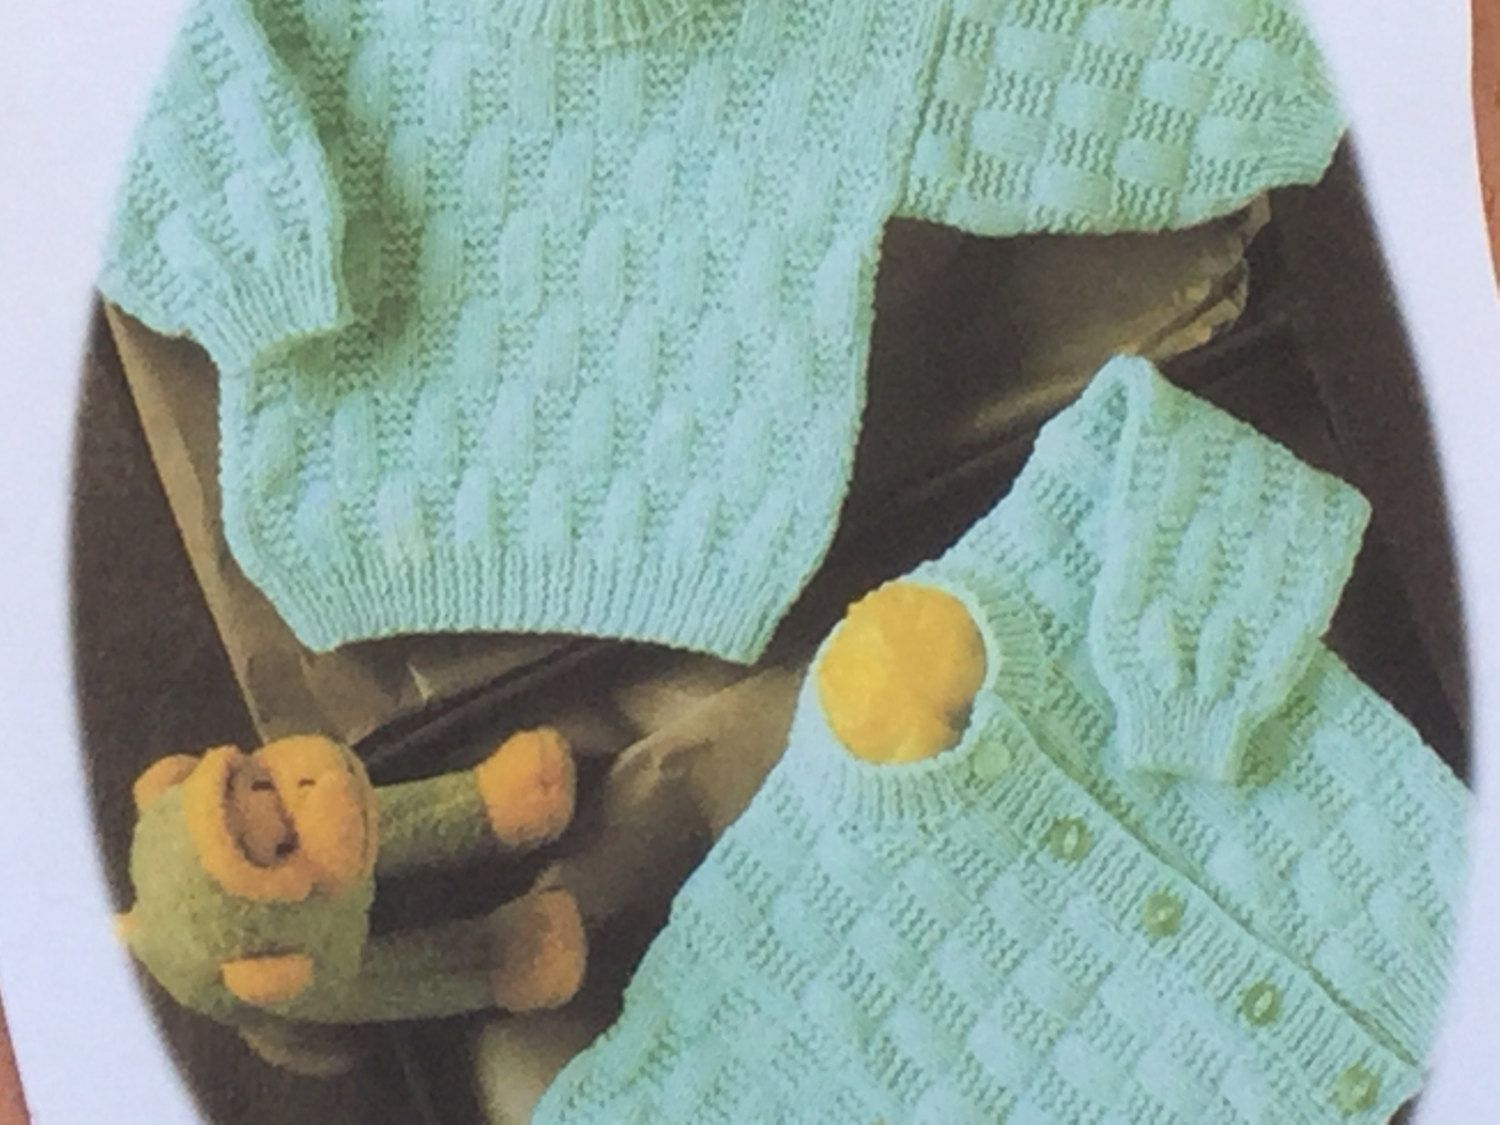 Ukeu seller vintage baby knitting pattern stylecraft 4649 sweater ukeu seller vintage baby knitting pattern stylecraft 4649 sweatercardigan easy knit premature size fits chest 12 22 30 56cms bankloansurffo Image collections